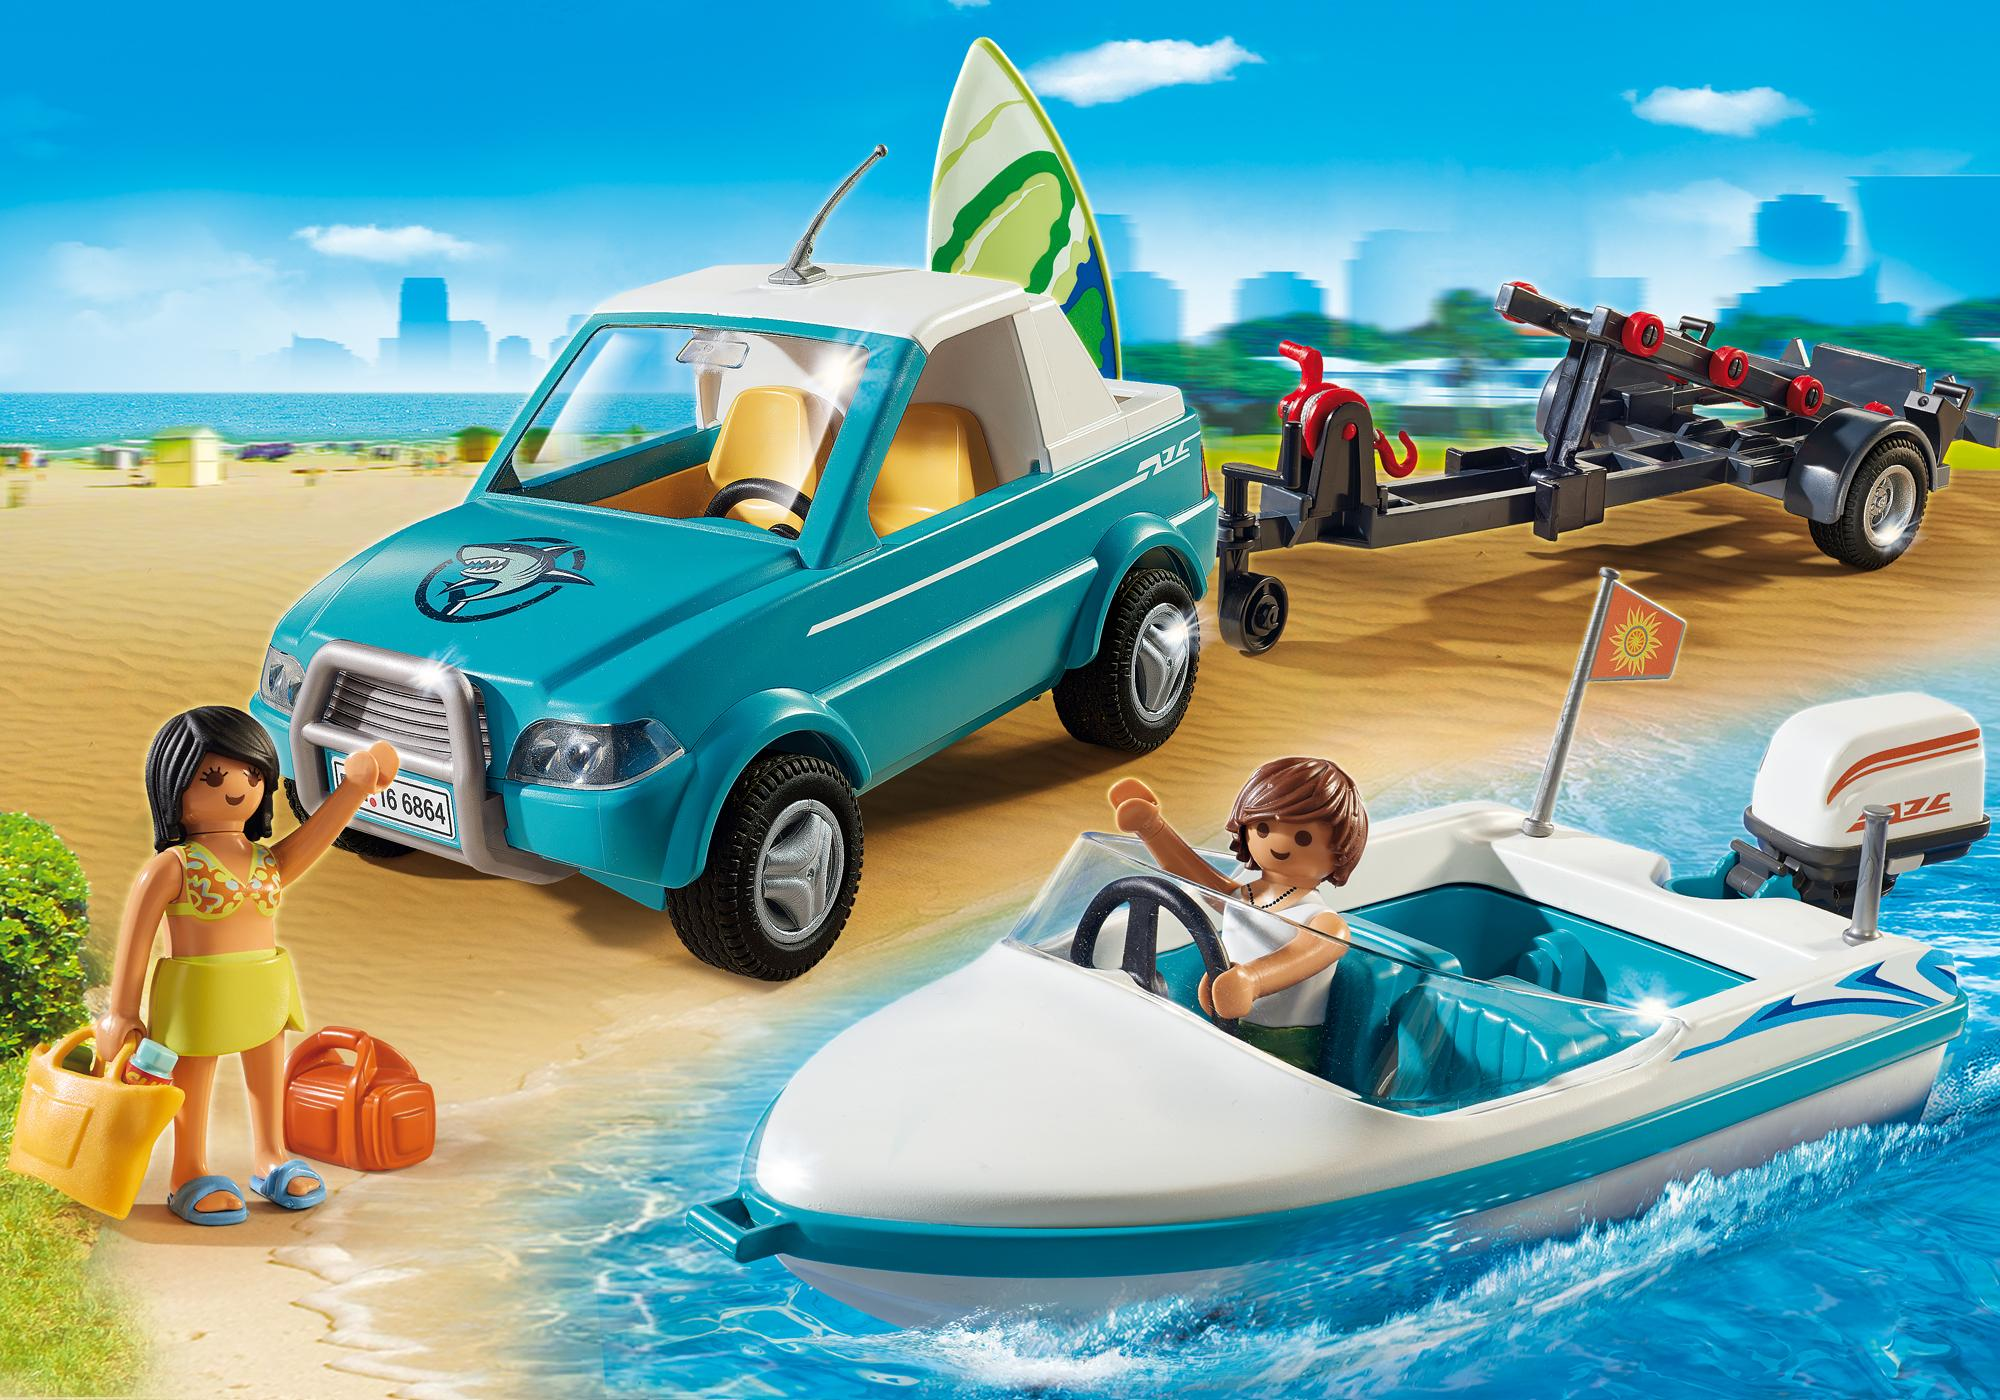 http://media.playmobil.com/i/playmobil/6864_product_detail/Surfer Pickup with Speedboat